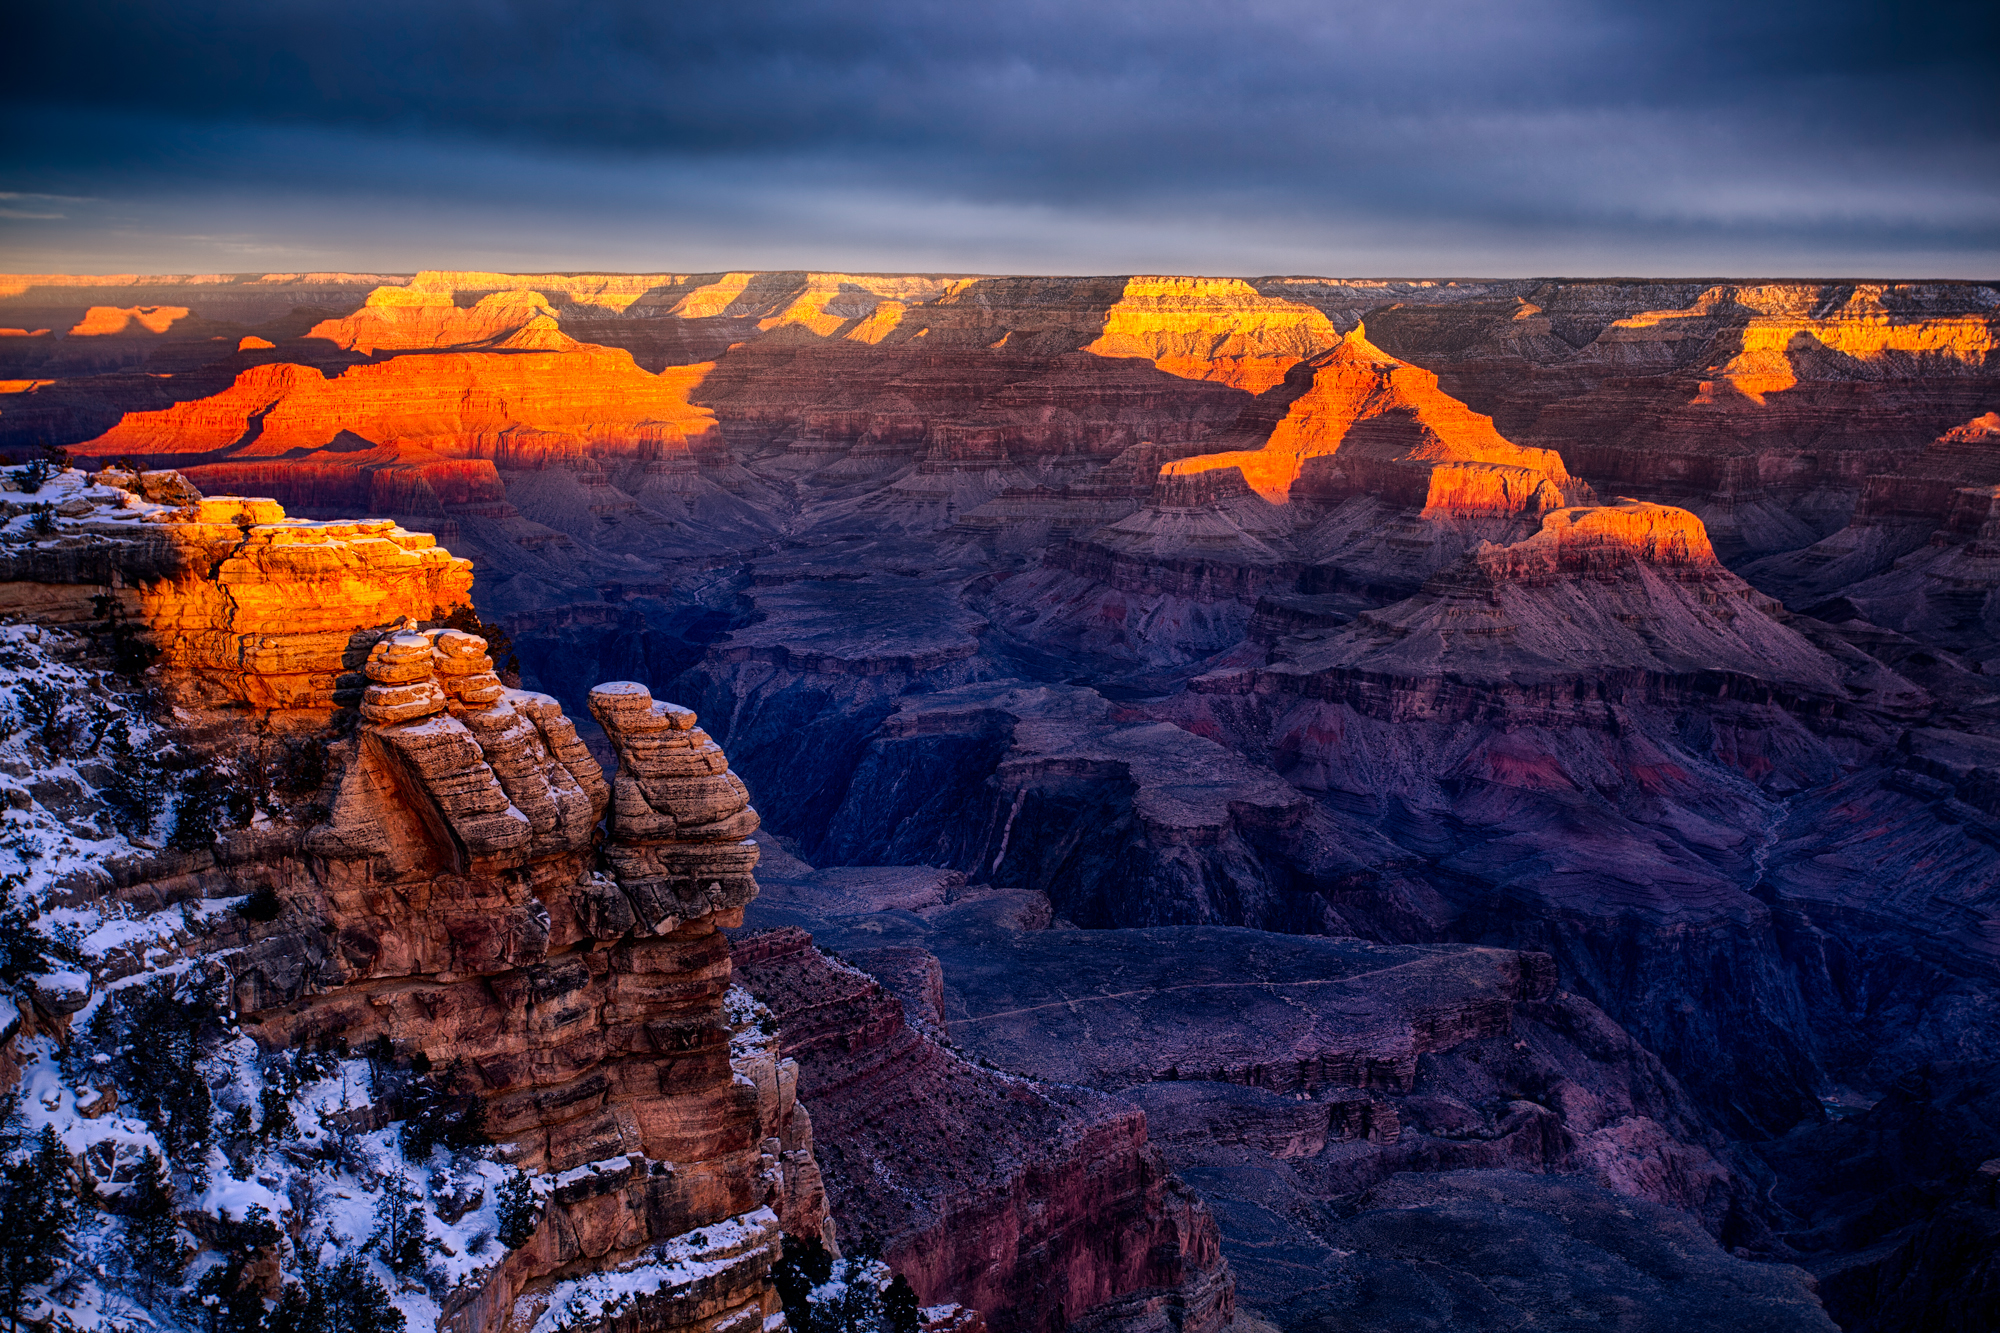 Windows 10 Fall Usa Wallpapers 4k Grand Canyon National Park National Park In Arizona